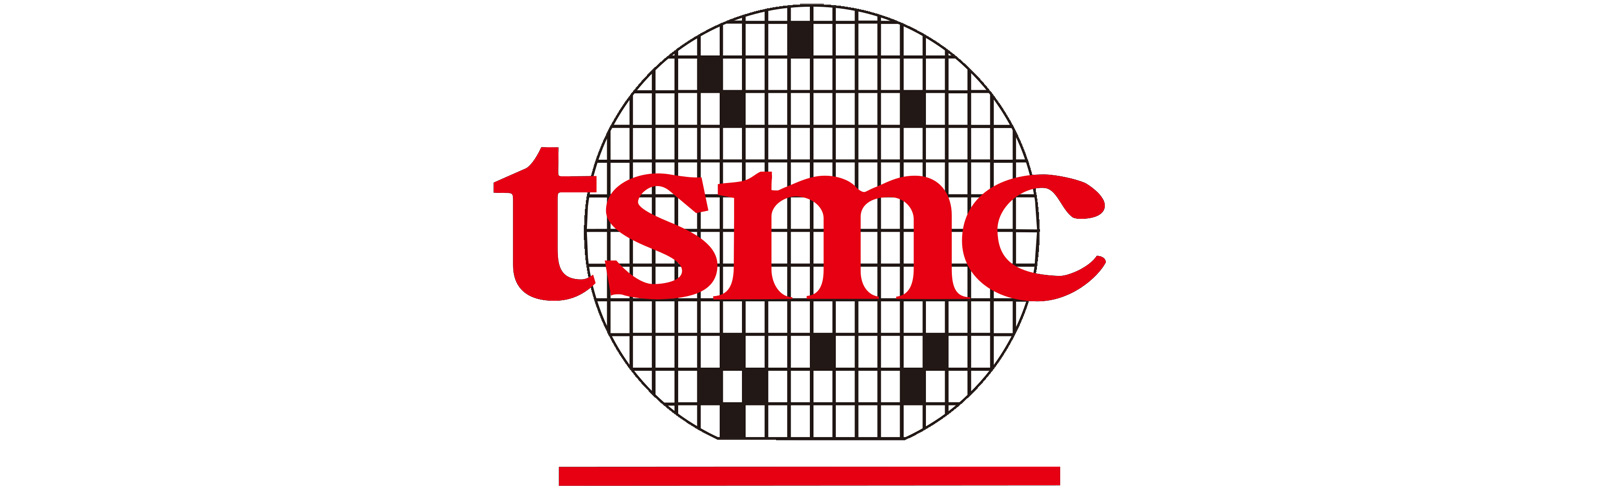 TSMC has completed its 5 nm design infrastructure for future Apple chipsets